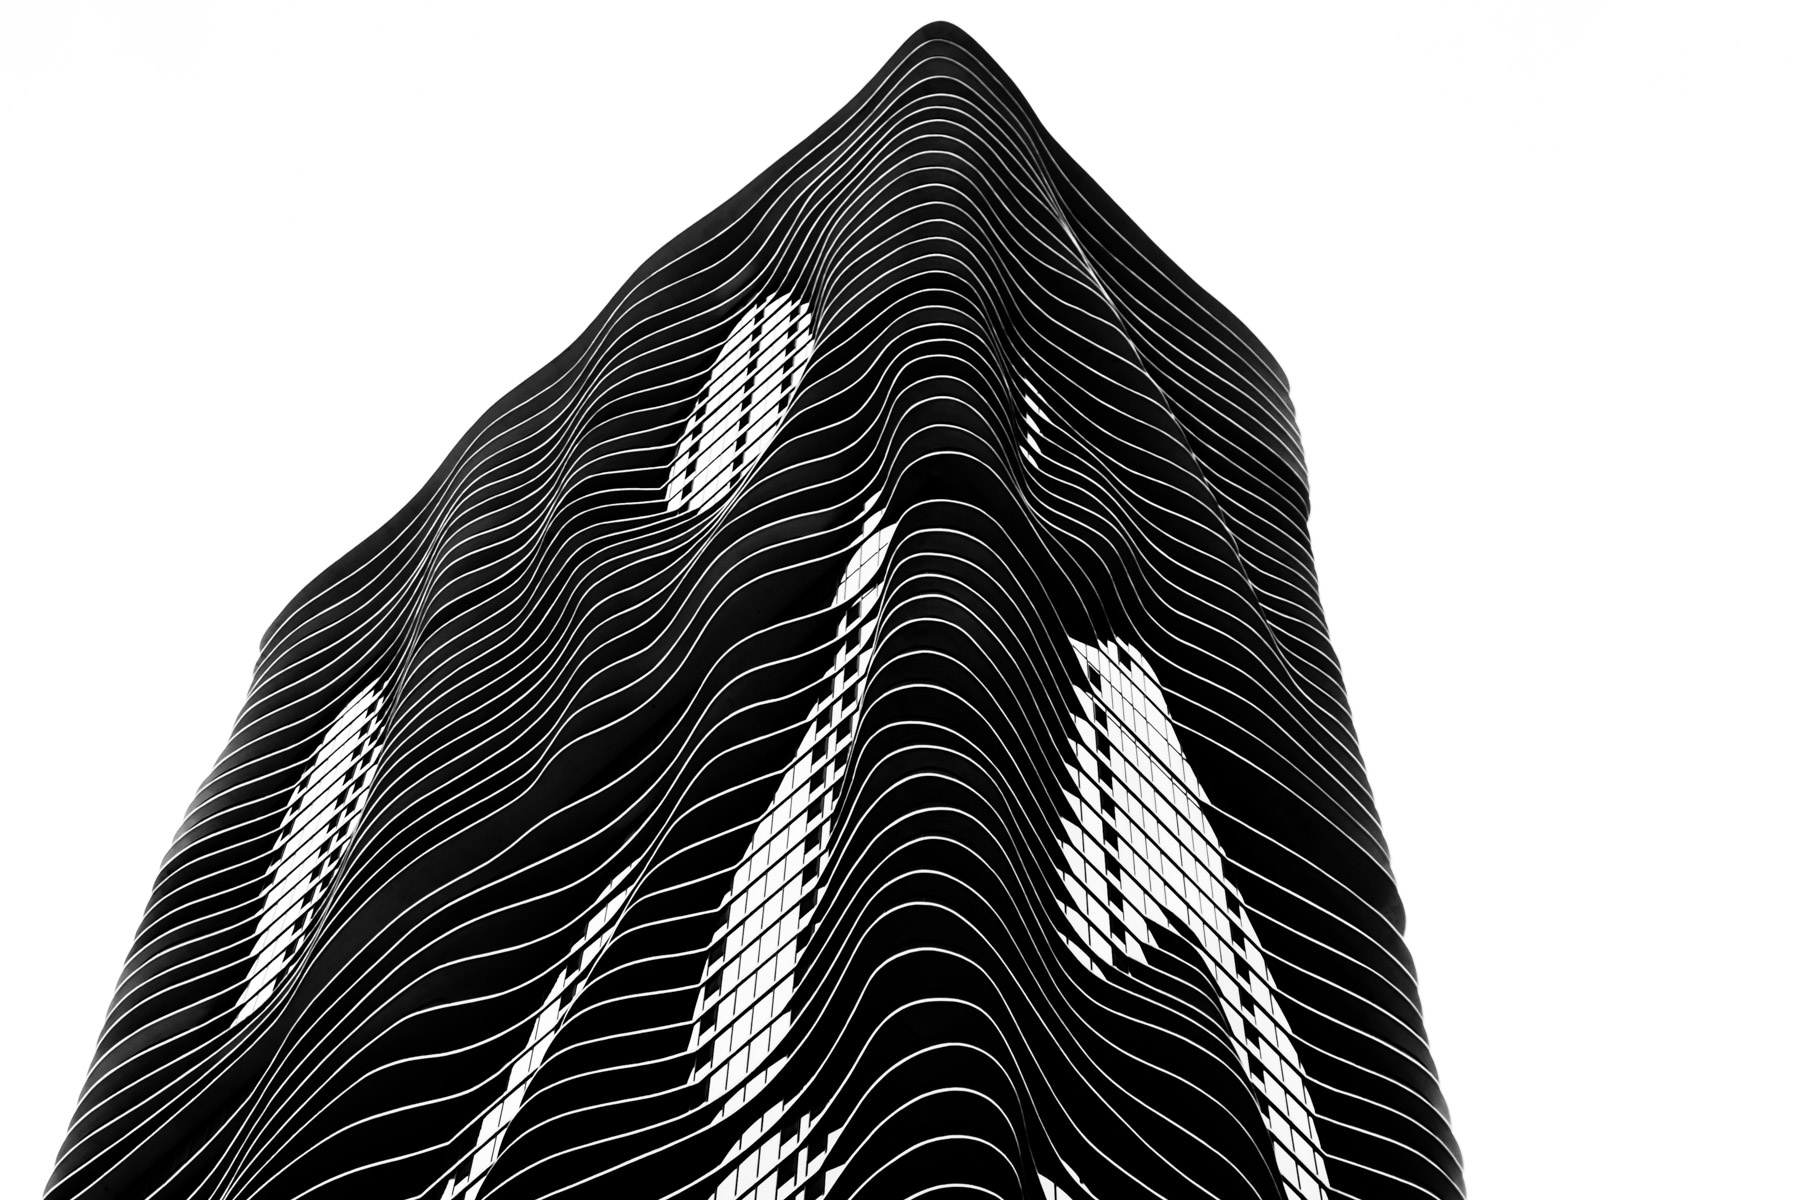 A minimalist architectural study of the undulating, irregular exterior of Chicago's 84-story-tall Aqua skyscraper.